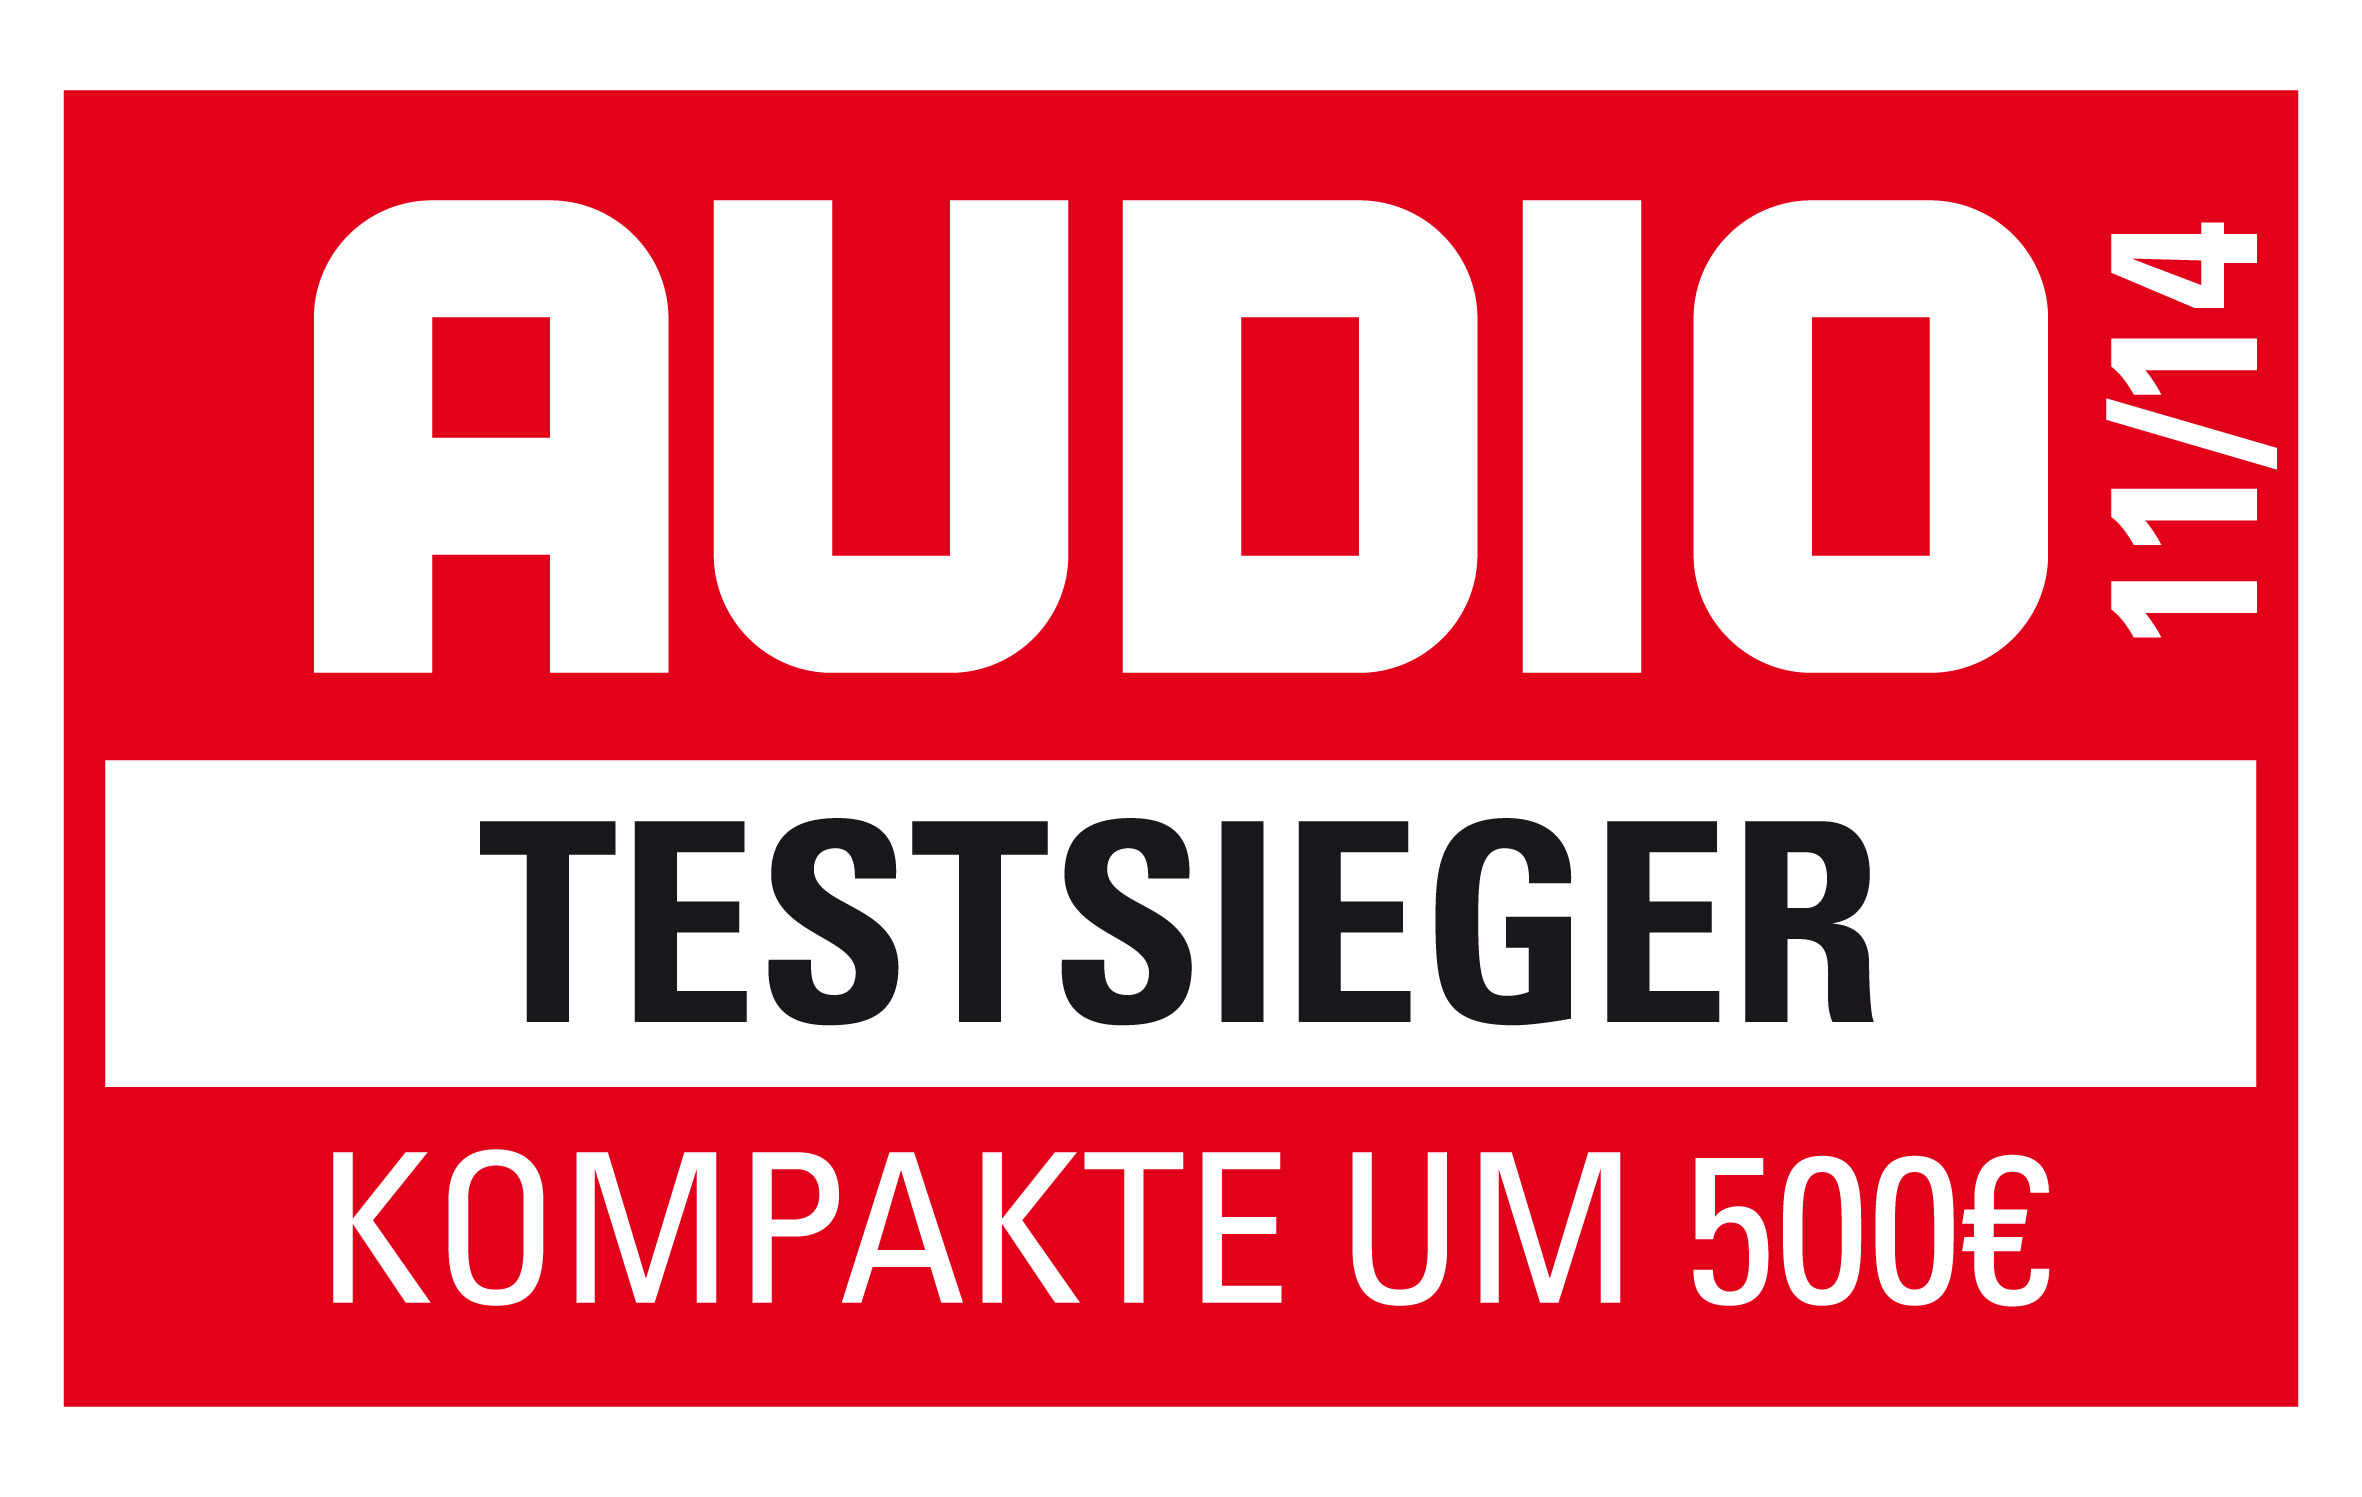 Chrono_502-2_Audio_Testsieger